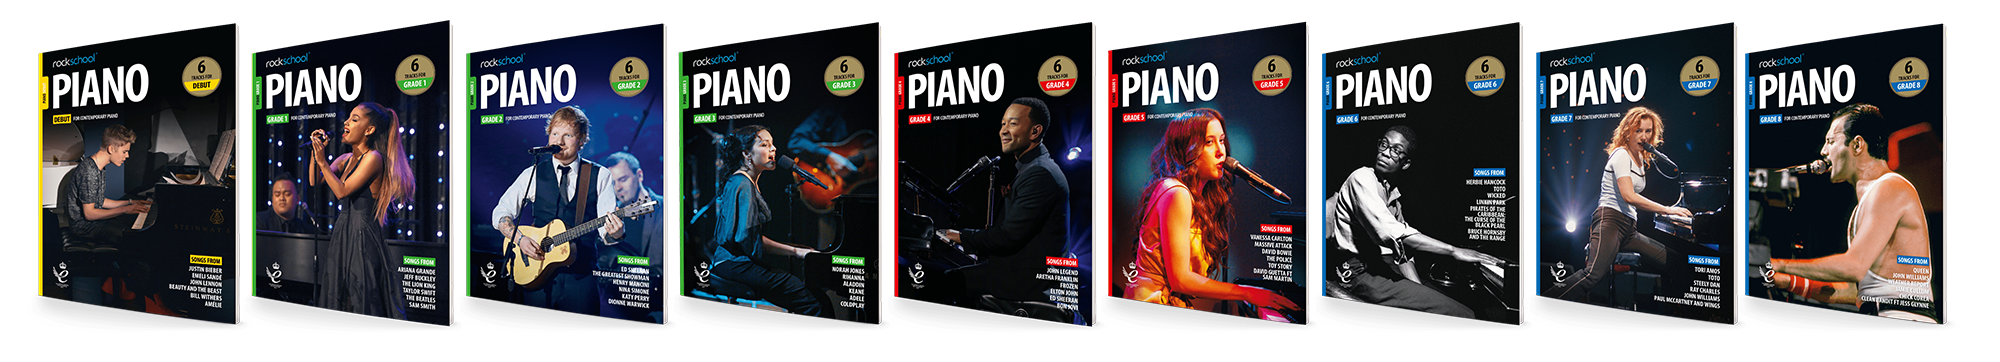 Rockschool Piano Book Covers